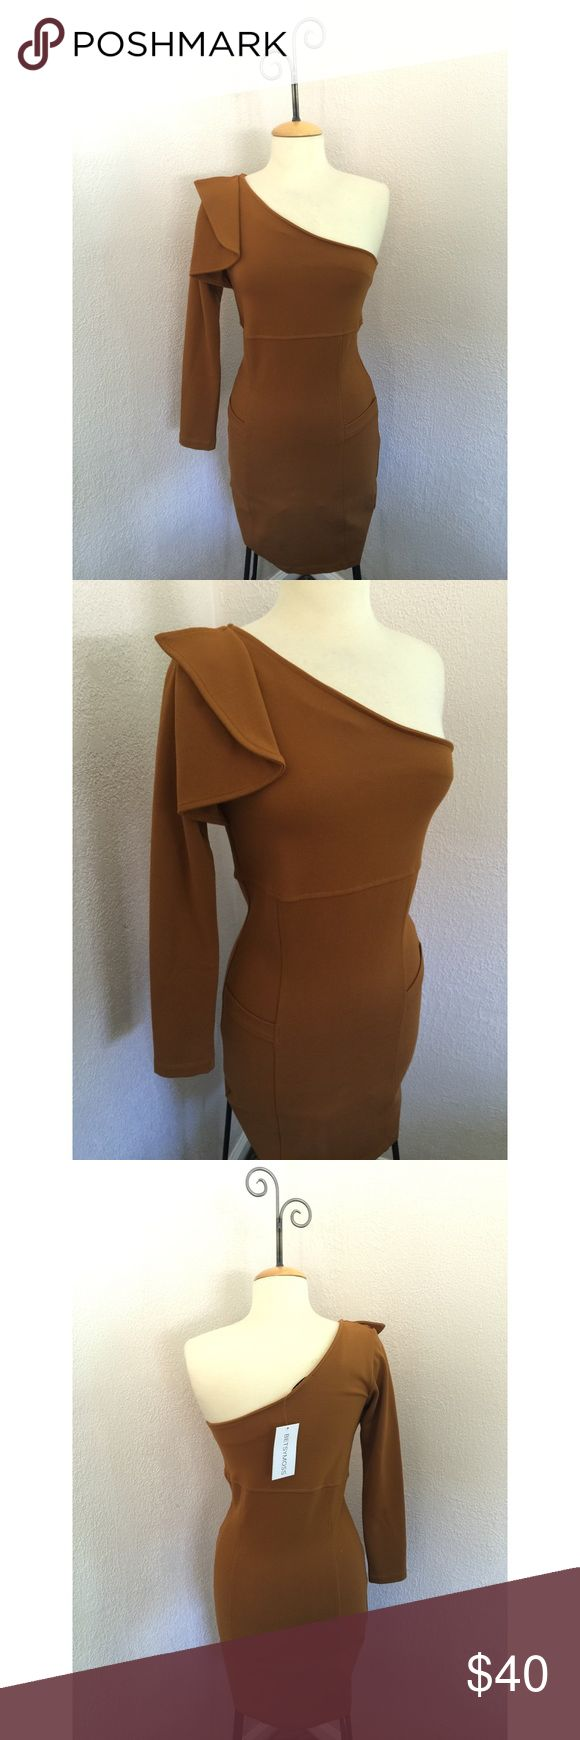 NWT Betsy Moss Camel Brown One Sleeve Dress Size M New with tags! Camel brown colored dress by Betsy moss, sexy one sleeve look, size M betsy moss Dresses One Shoulder